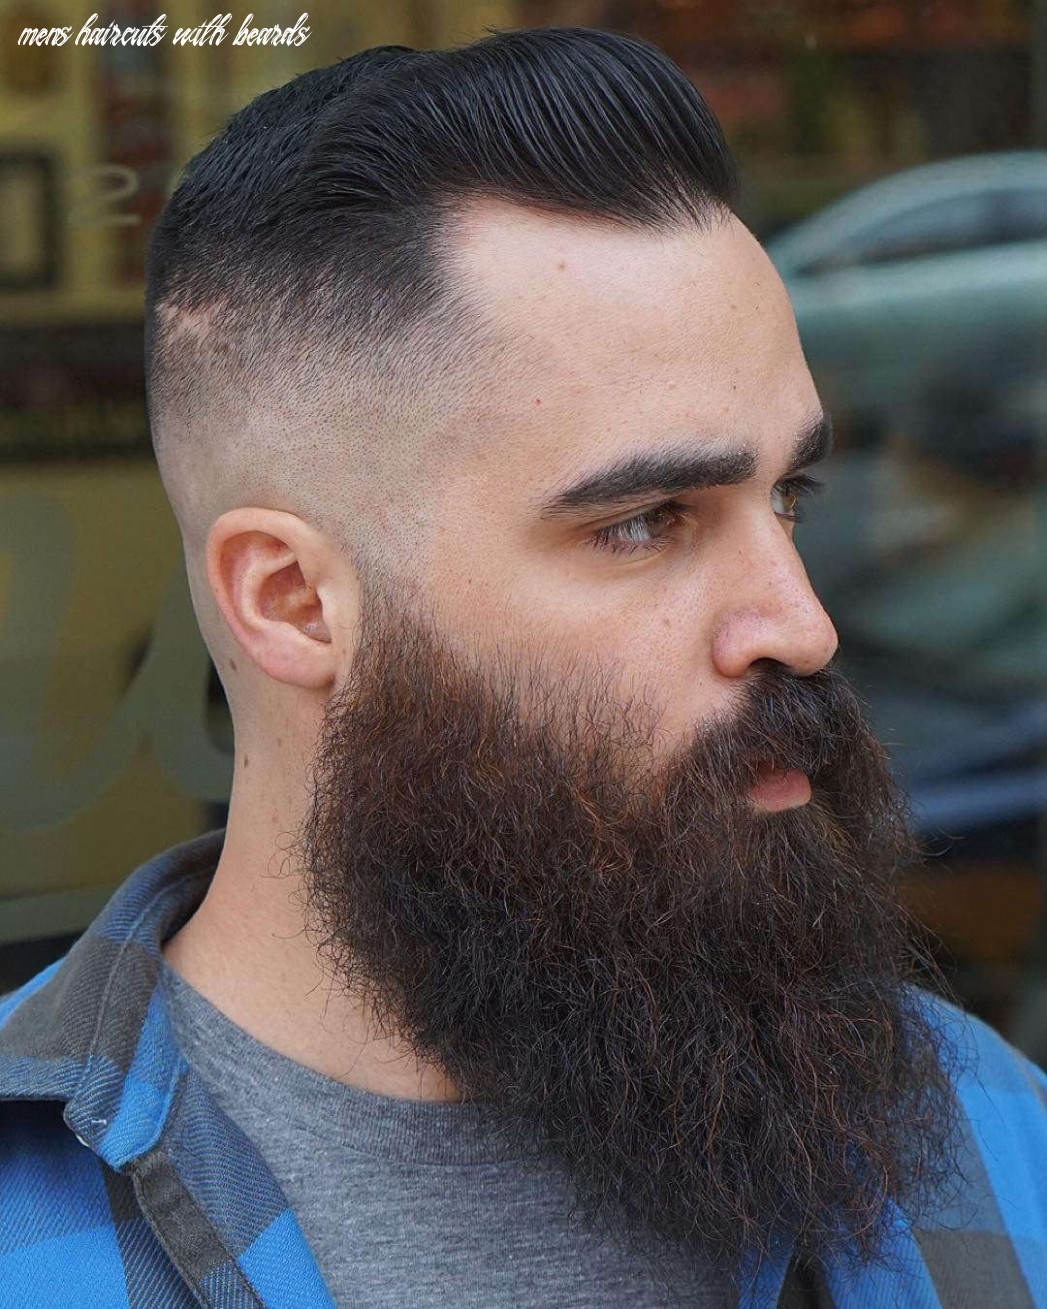 Top 11 hairstyles for men with beards mens haircuts with beards